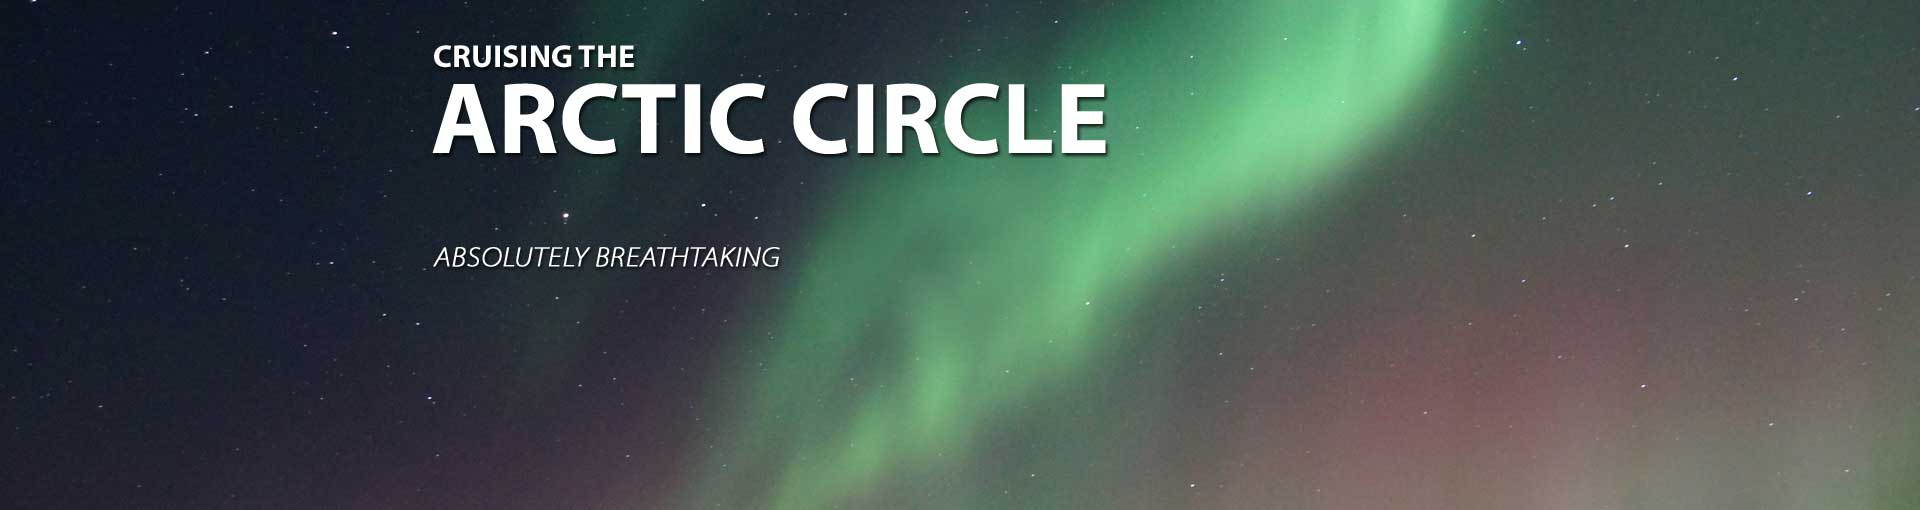 Cruise the Arctic Circle for the Northern Lights